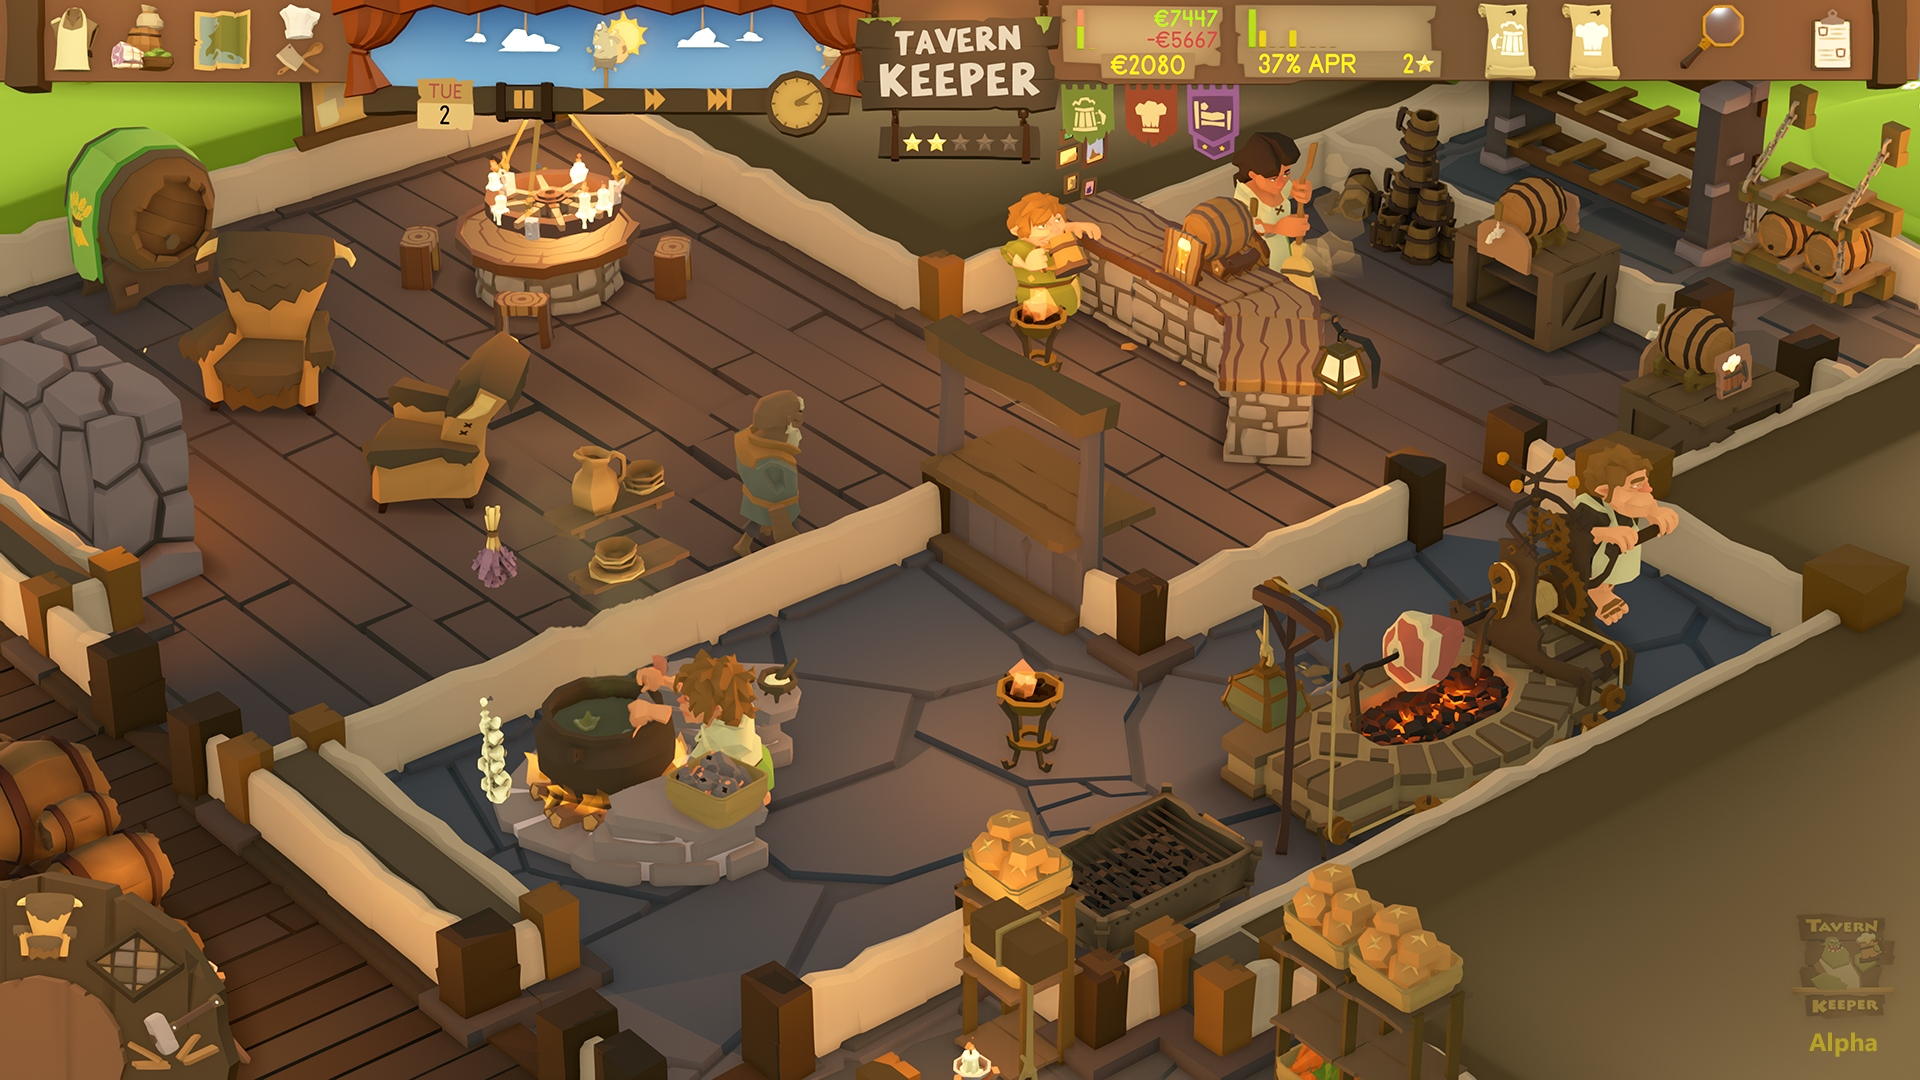 Tavern Keeper Alpha Screenshot 2